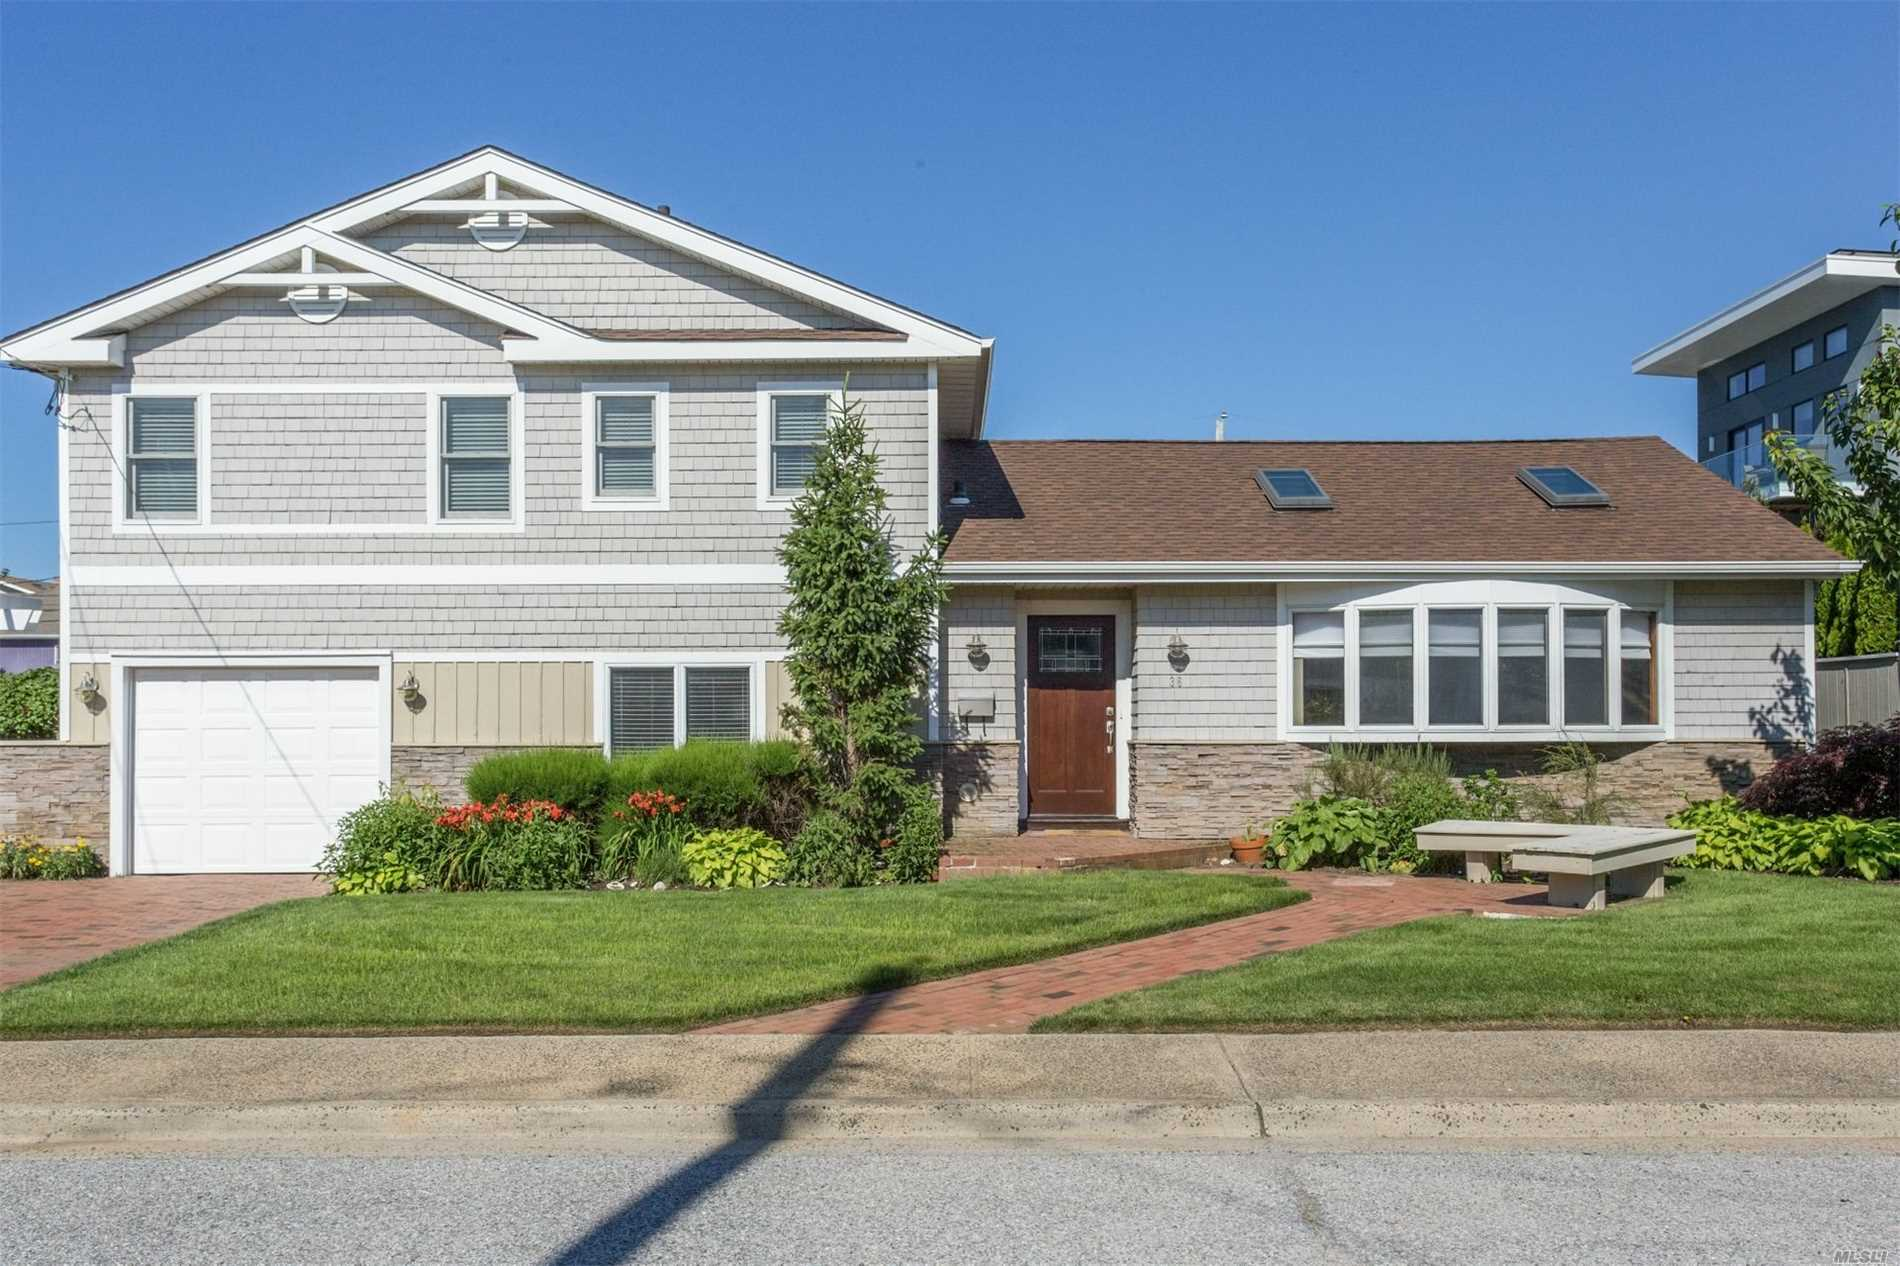 Photo of home for sale at 36 Leamington St, Lido Beach NY